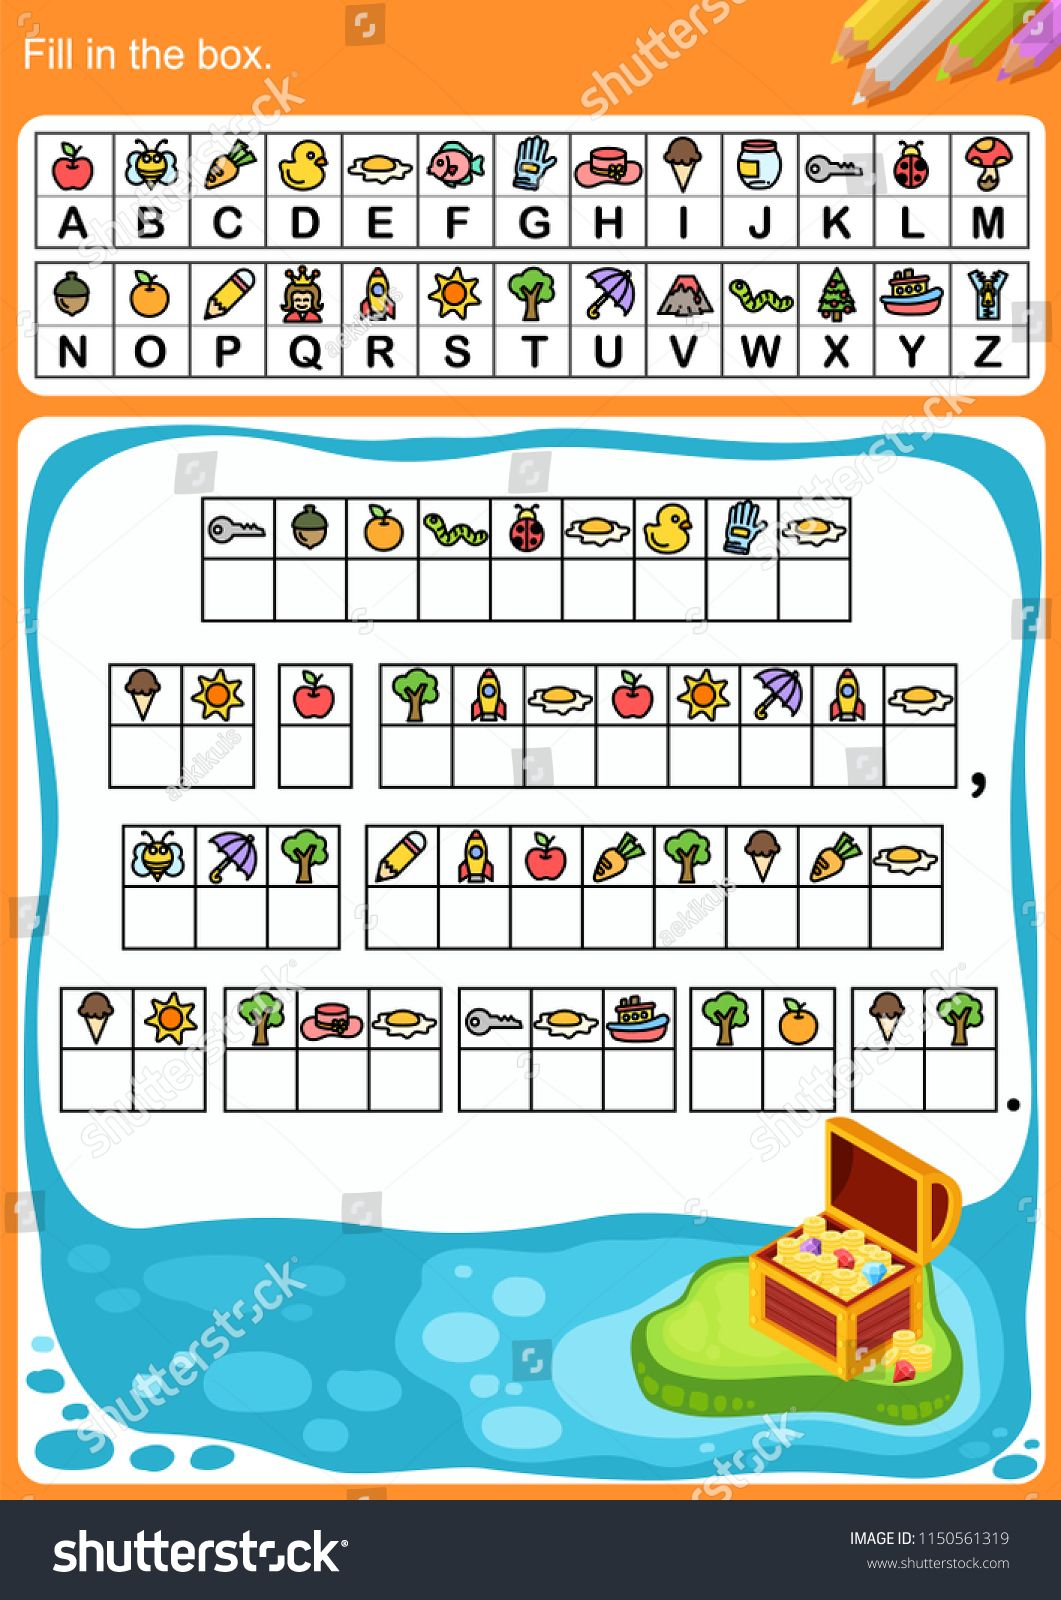 Decode Alphabet Fill In The Box